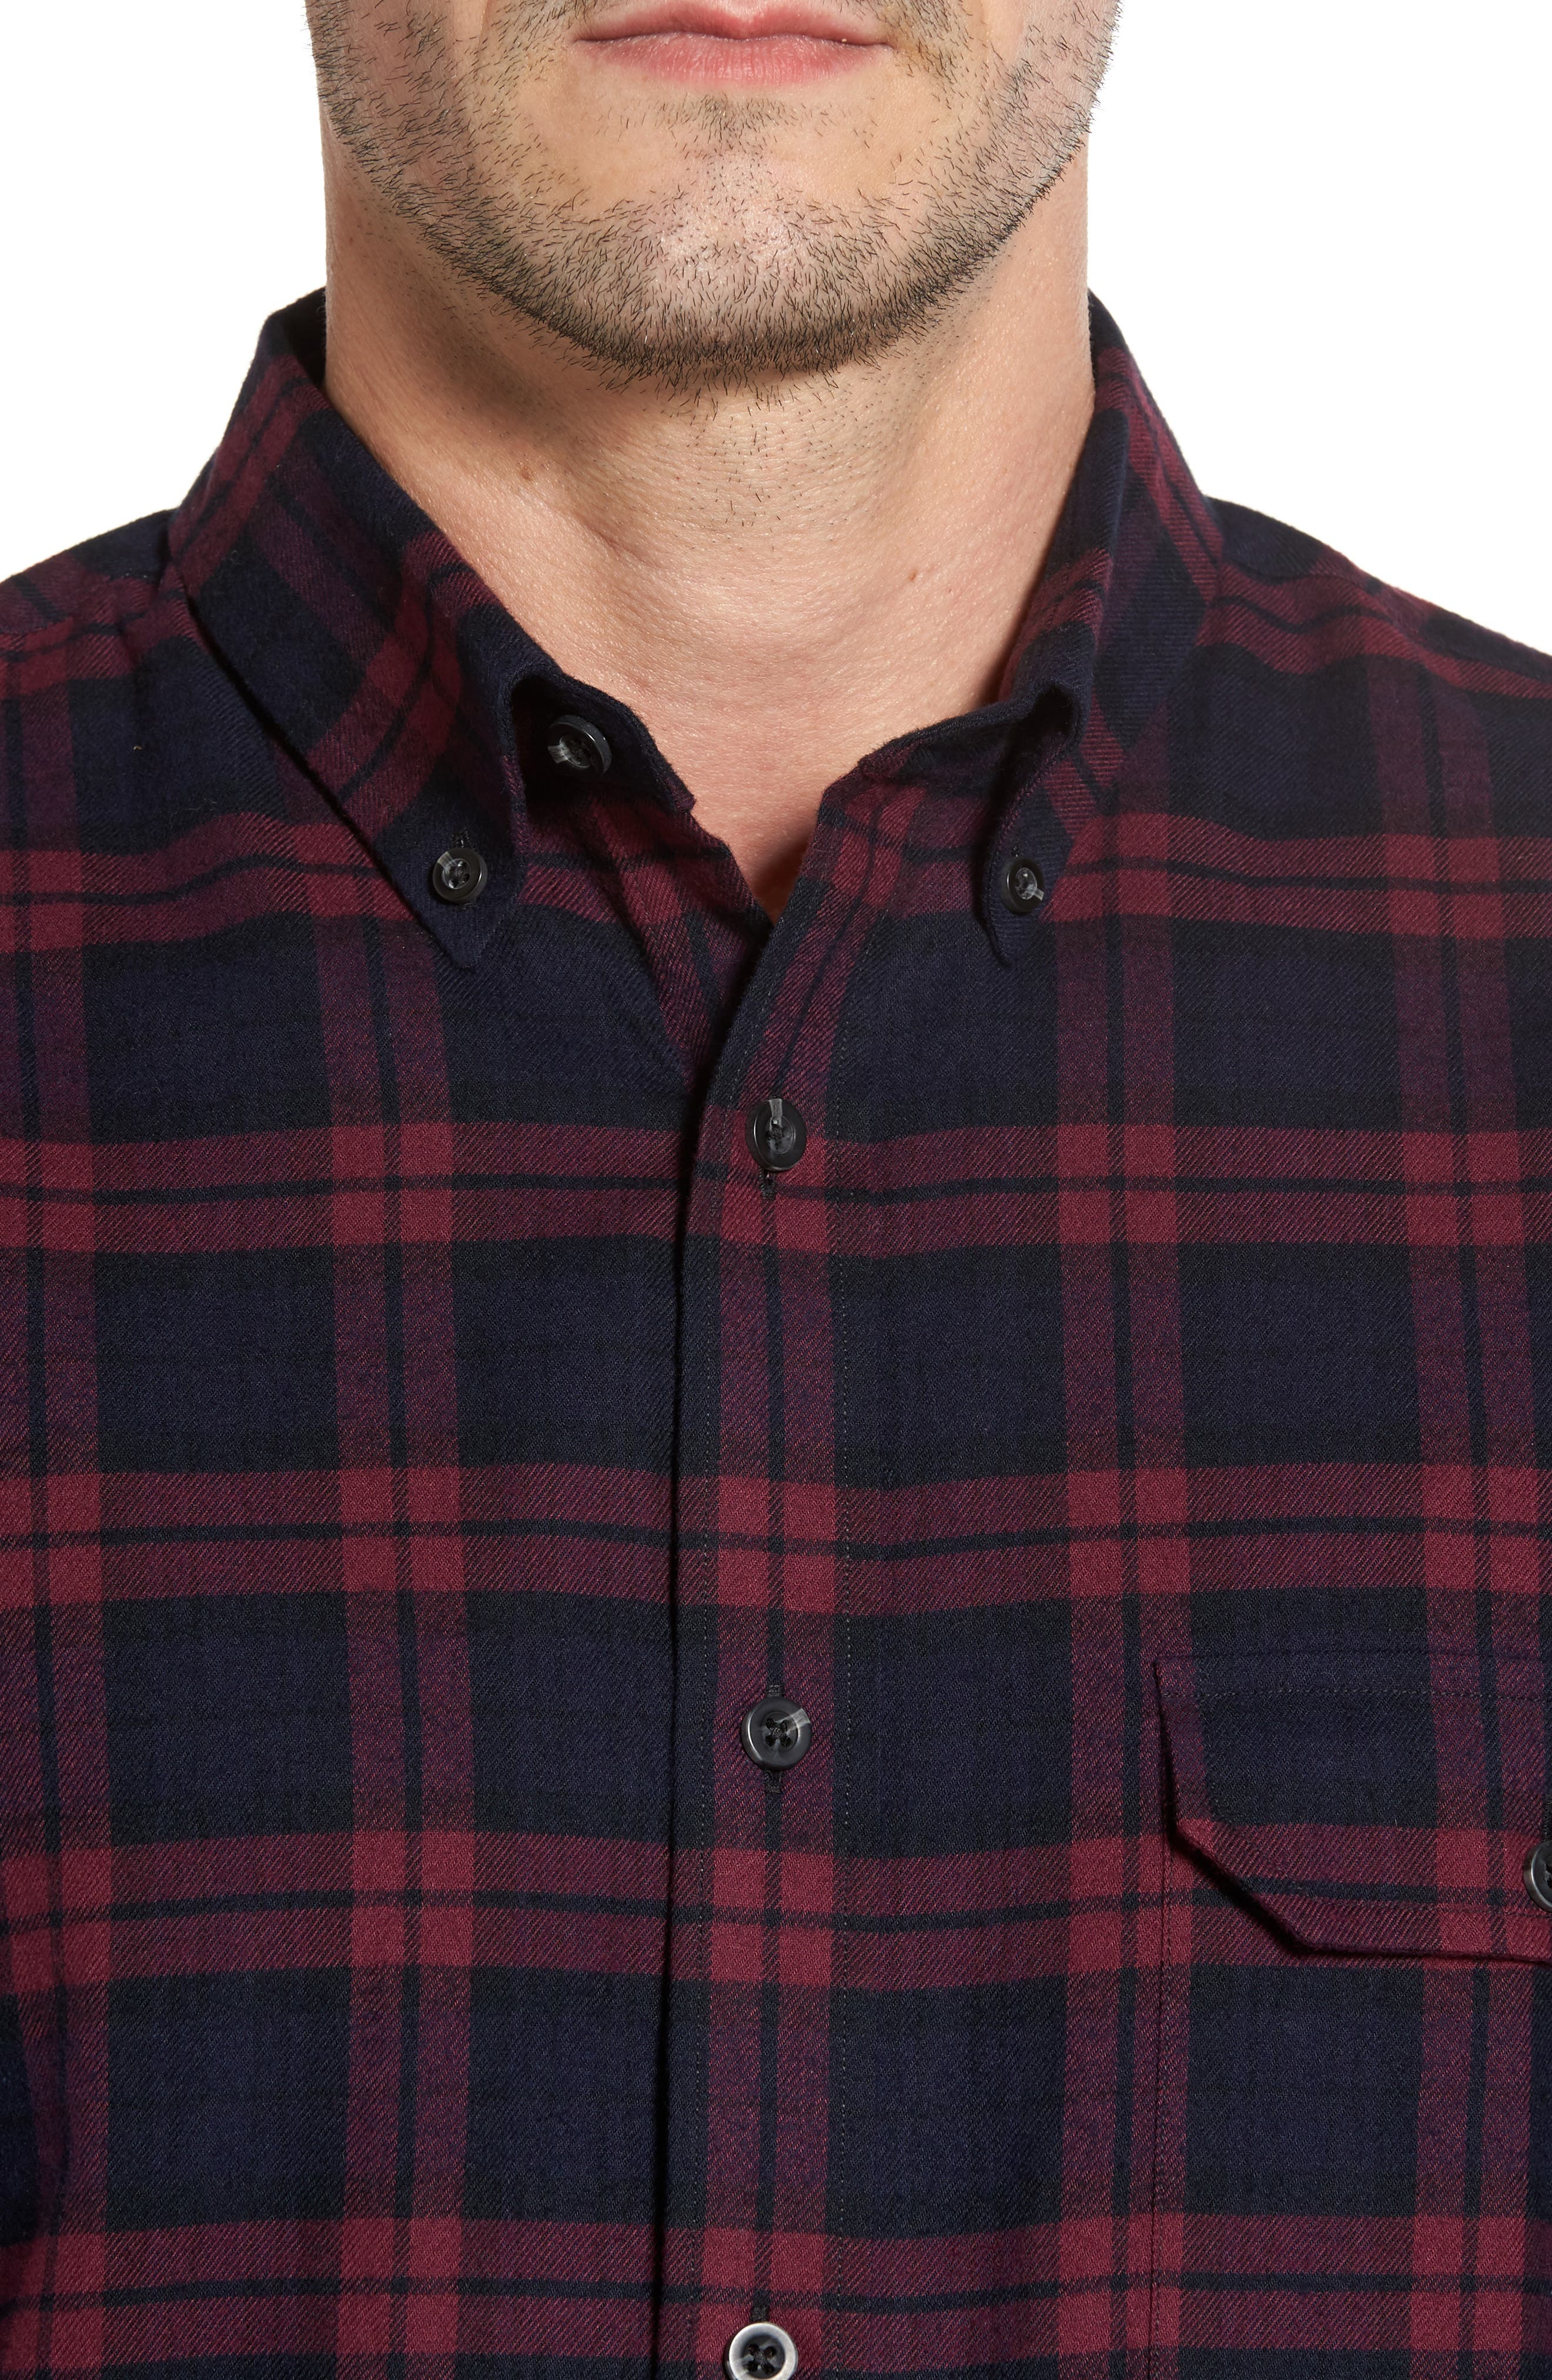 Regular Fit Plaid Sport Shirt,                             Alternate thumbnail 4, color,                             Red Chili Plaid Flannel